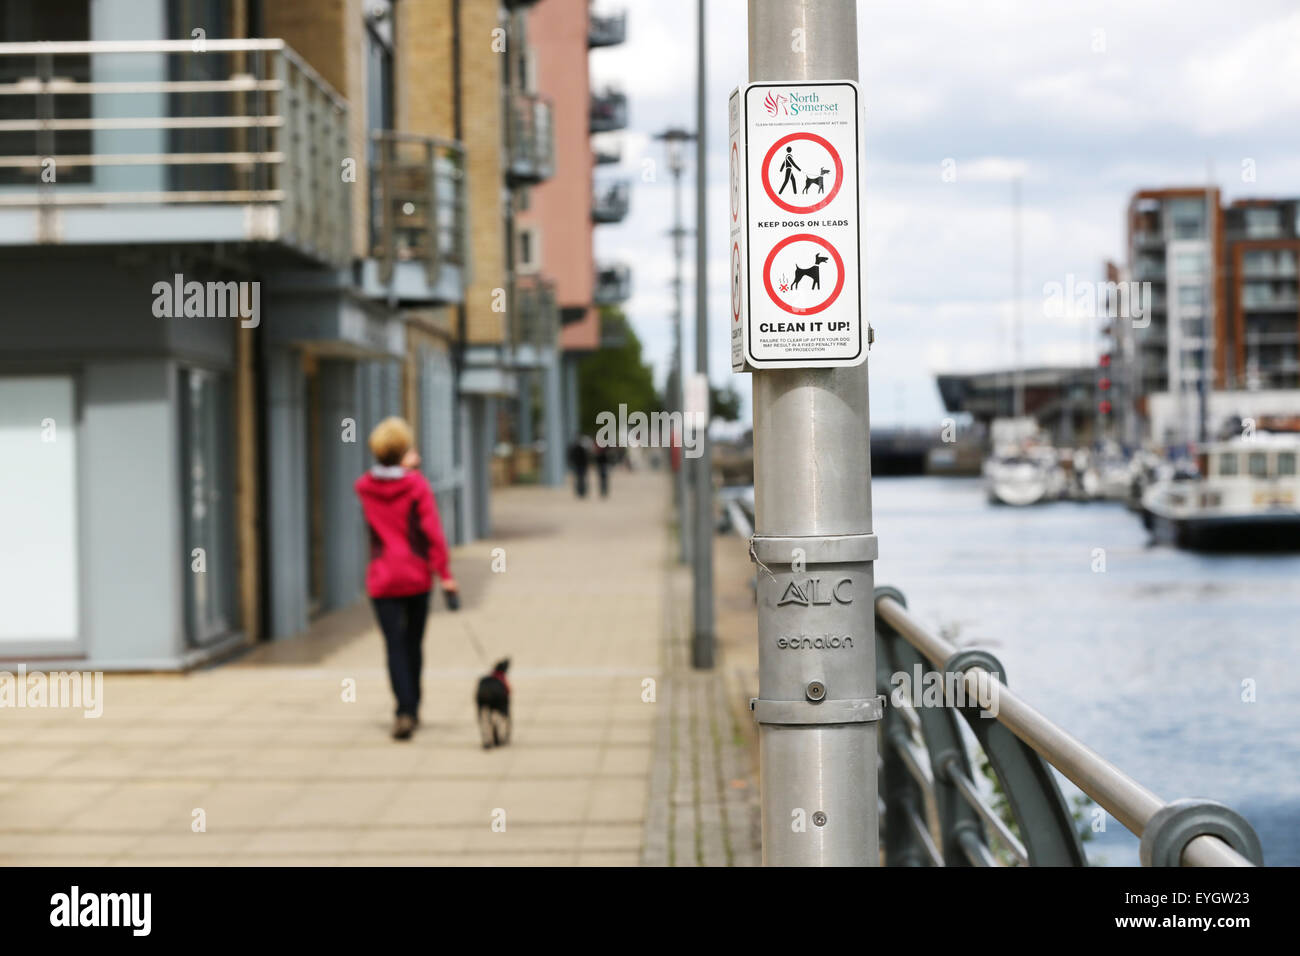 A public no 'Dog Messing' and 'Dogs on Lead' sign on lamp post in city area, a dog walker with a - Stock Image